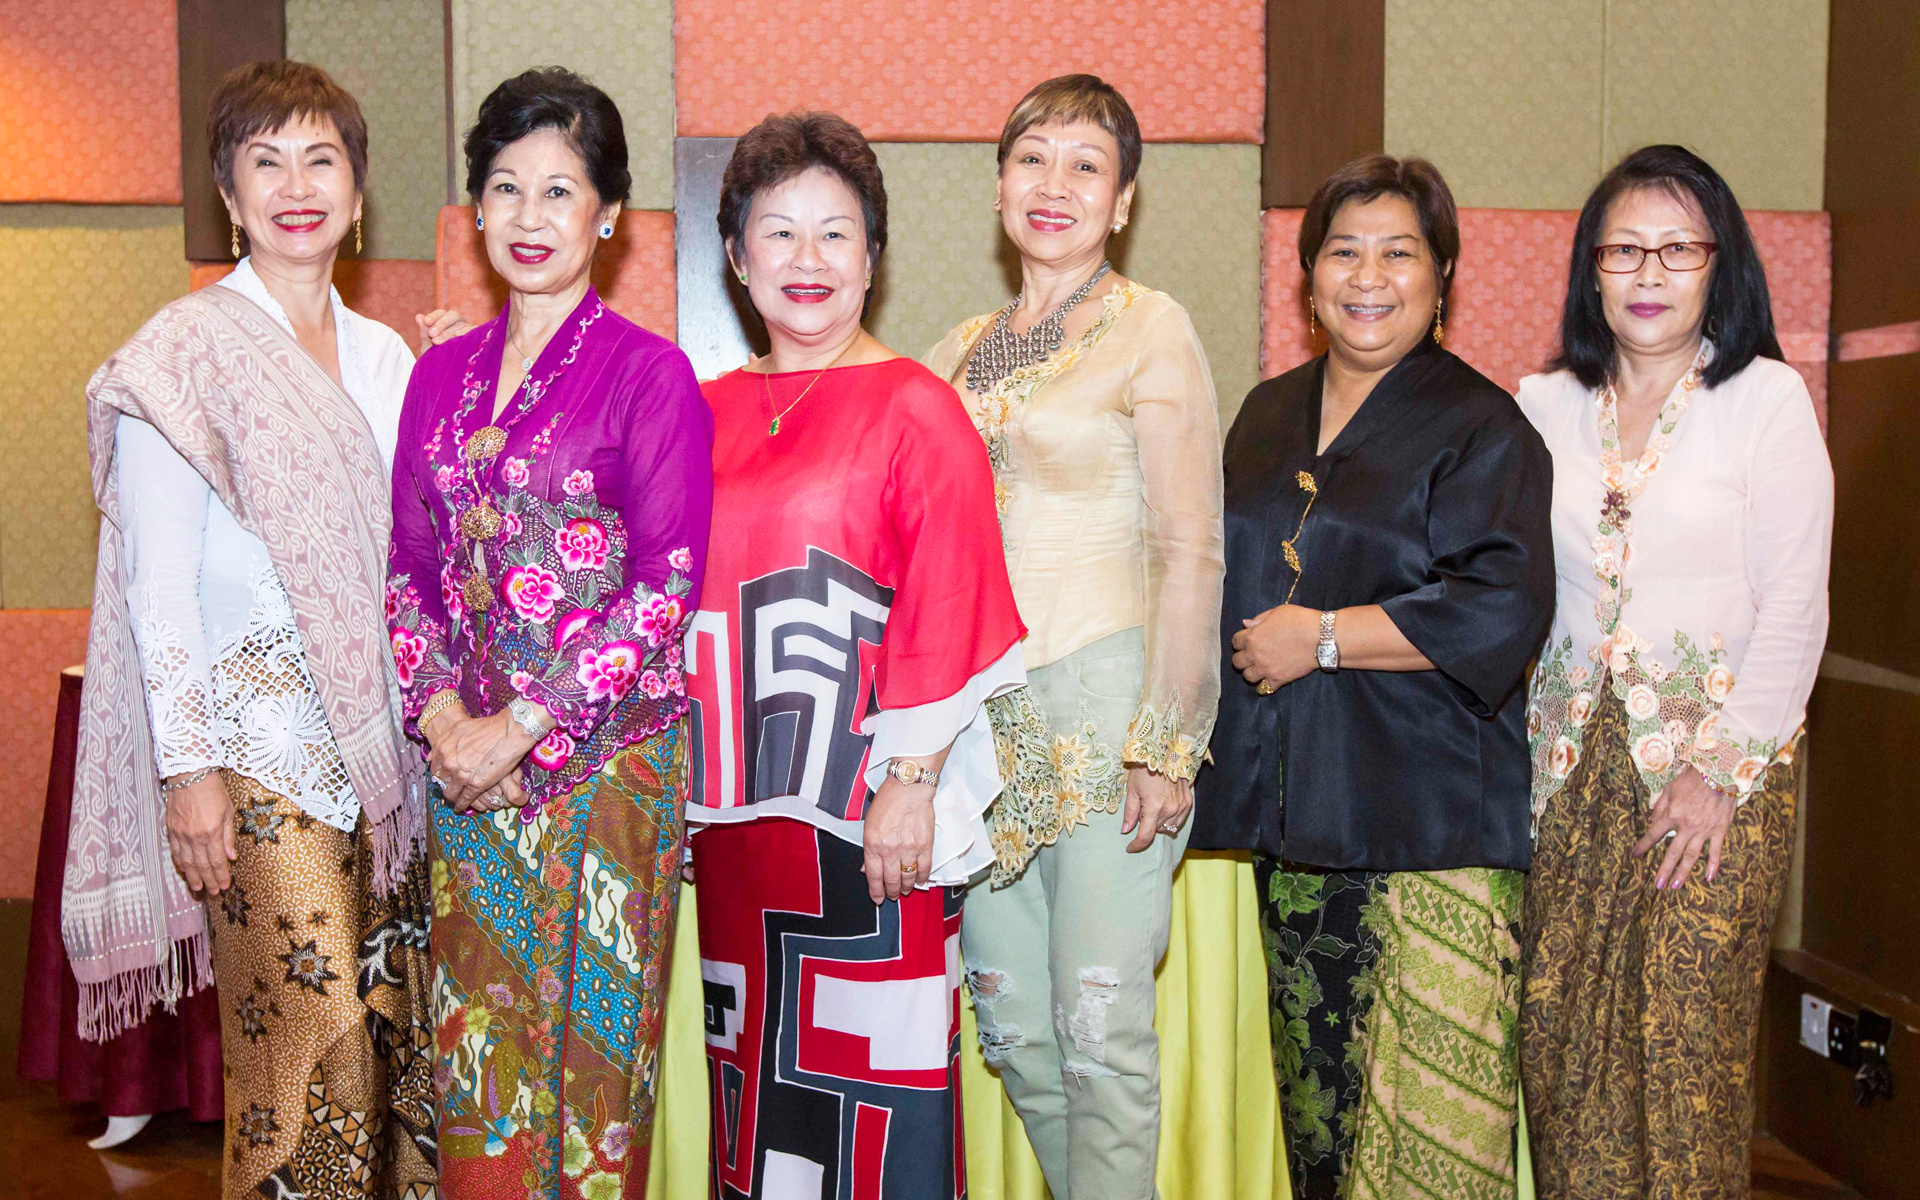 Dr Evelyn Khor, Datin Rose Chin, Eunice Moss, Leong Swee Han, Fadzillah Yassin and Lee Gee Eng